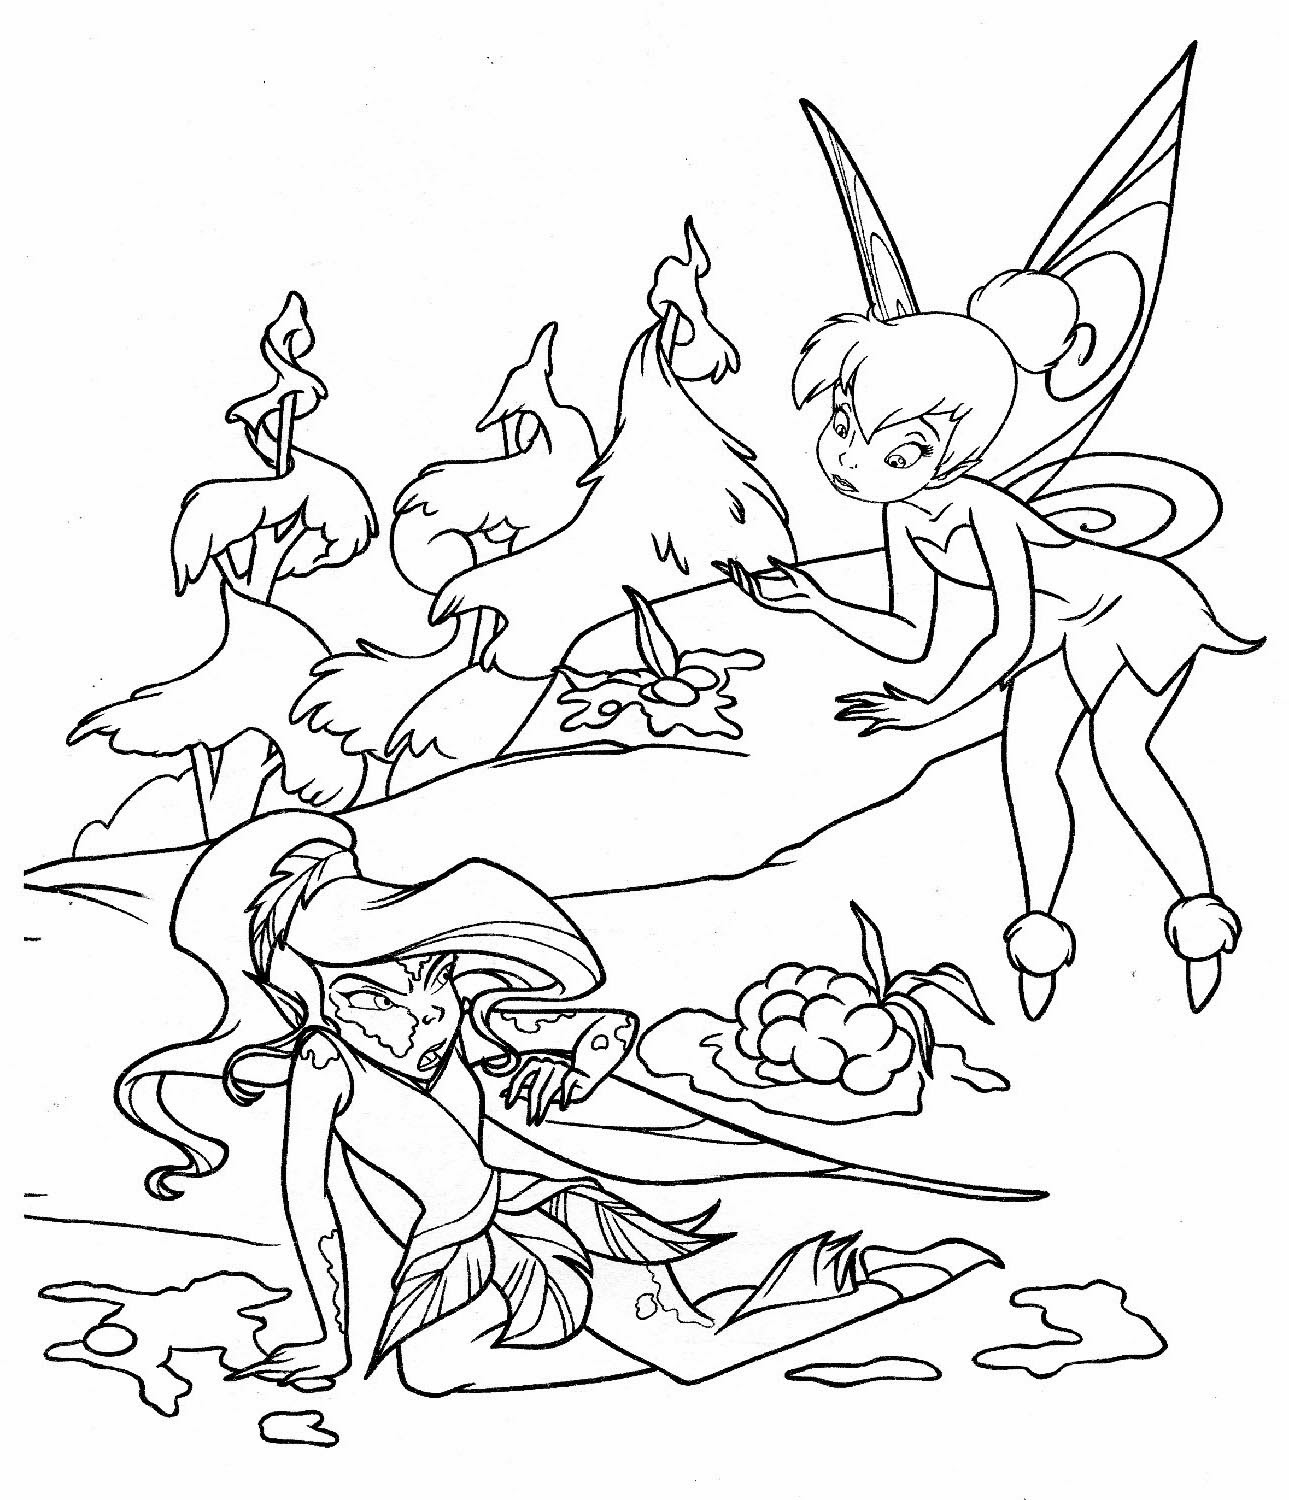 tinkerbell coloring page printable coloring pages page tinkerbell coloring